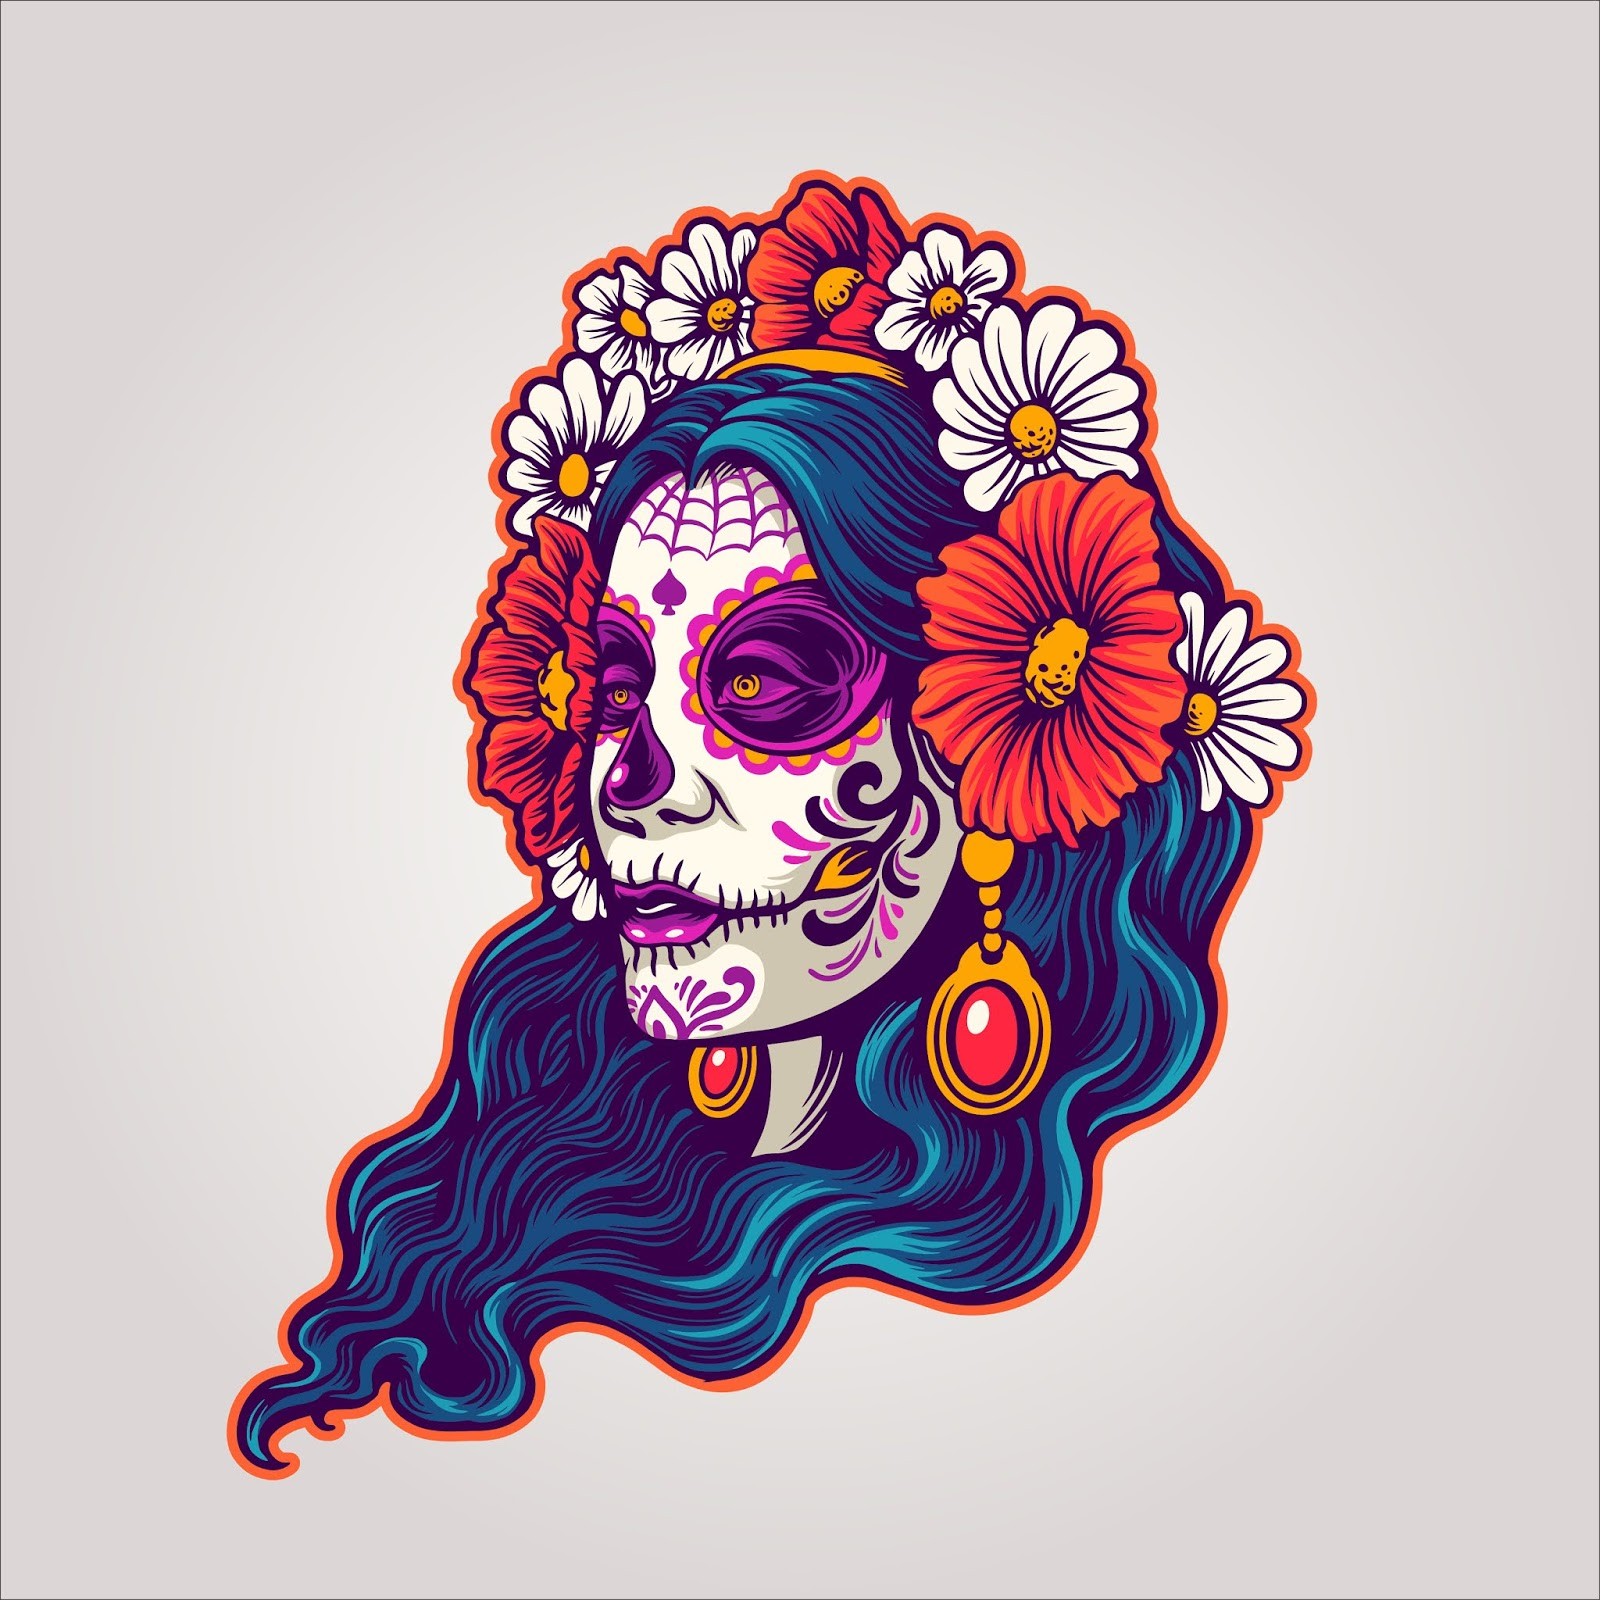 Dia Muertos Girl And Flower Free Download Vector CDR, AI, EPS and PNG Formats